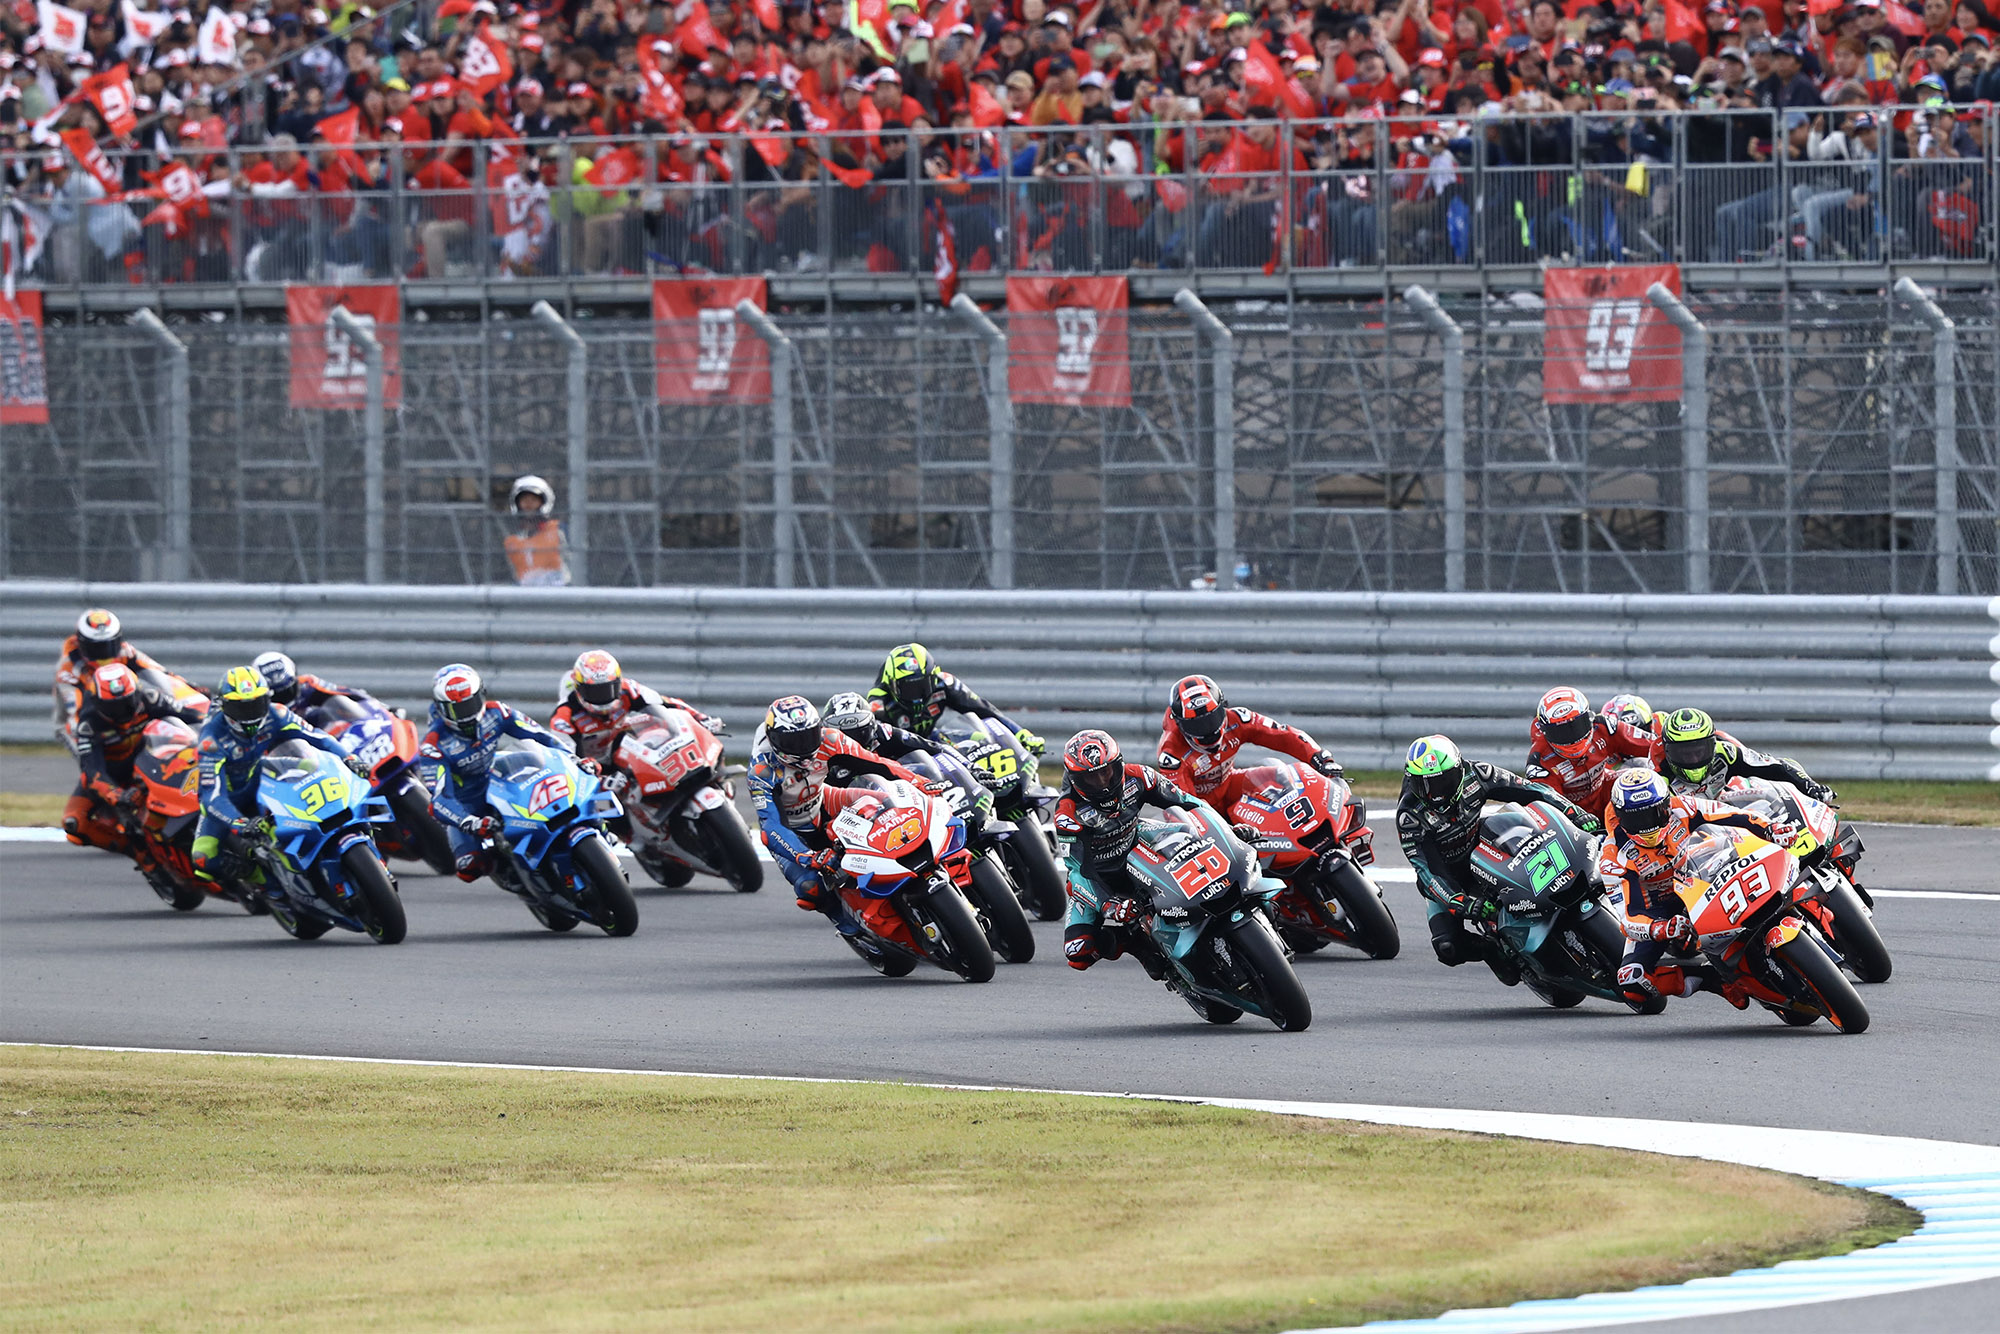 MotoGP in line for for Hungarian Grand Prix return in 2022